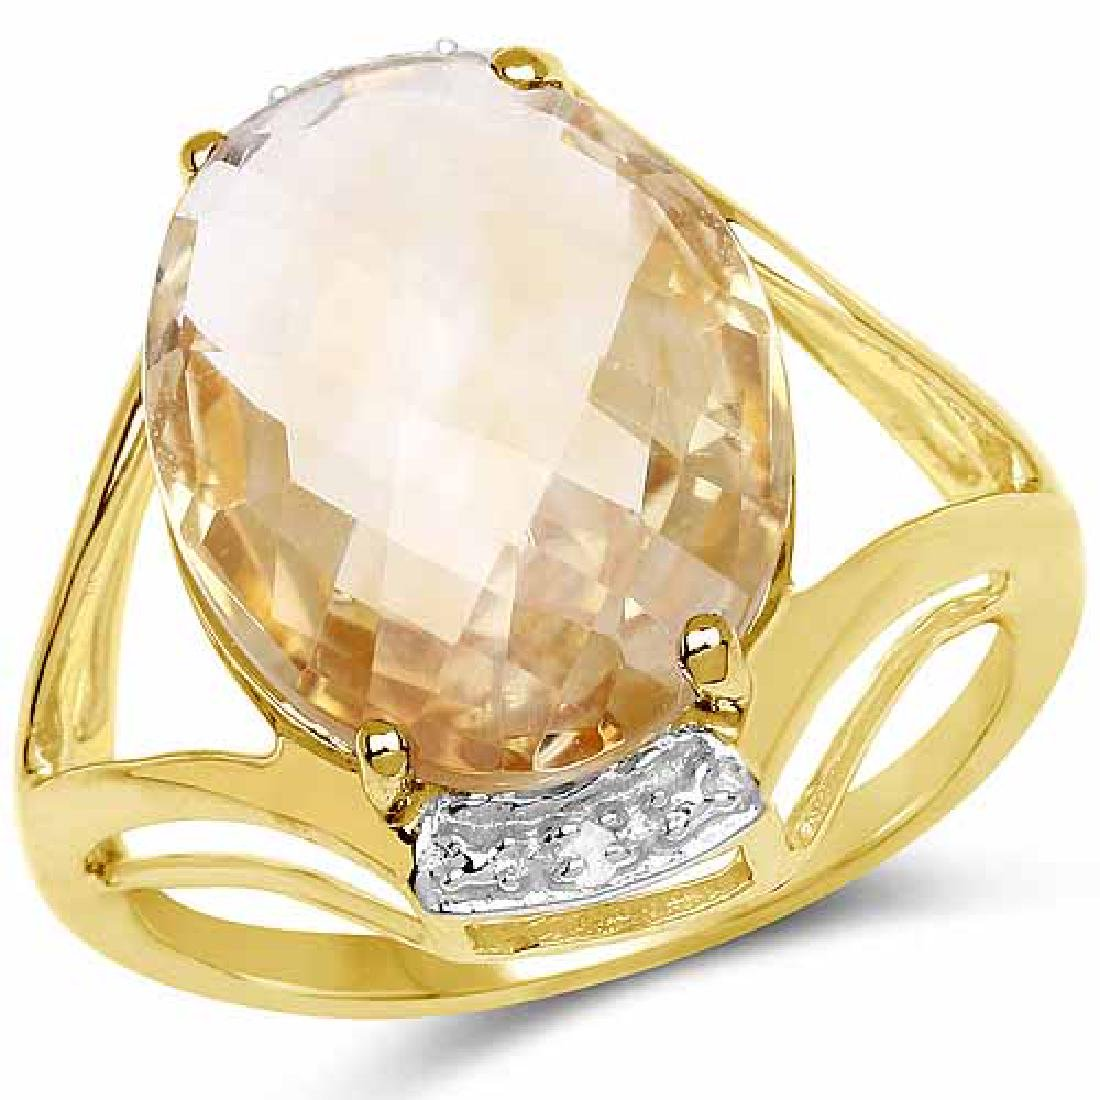 14K Yellow Gold Plated 7.27 Carat Genuine Citrine and W